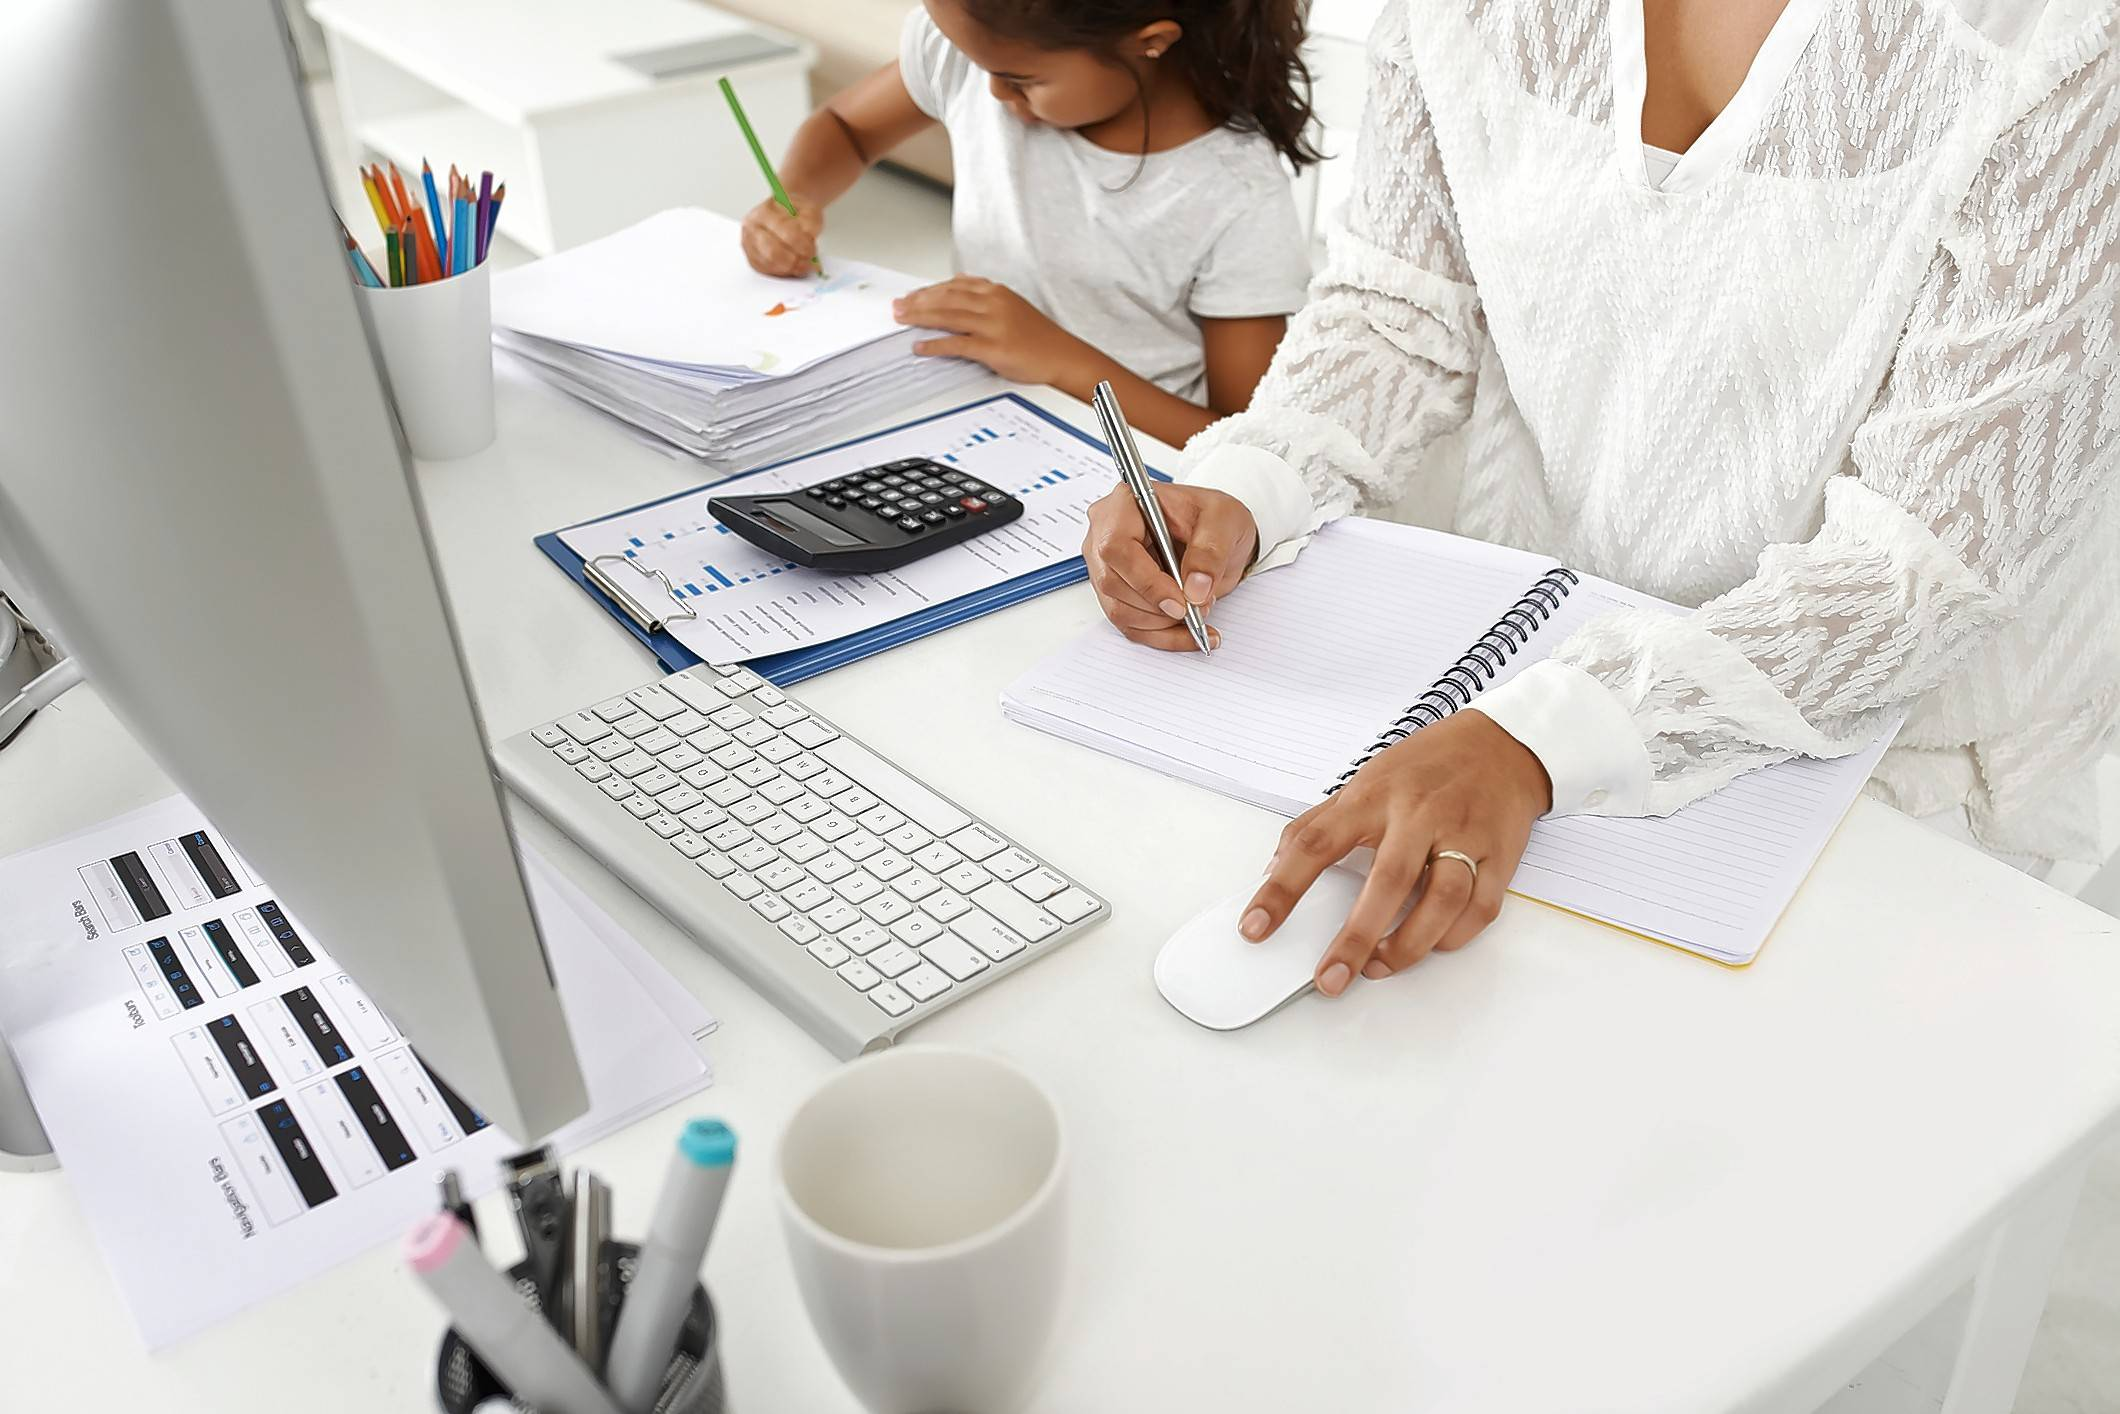 Working Mother magazine recognized several suburban companies on its annual list of 100 Best Companies for working moms.